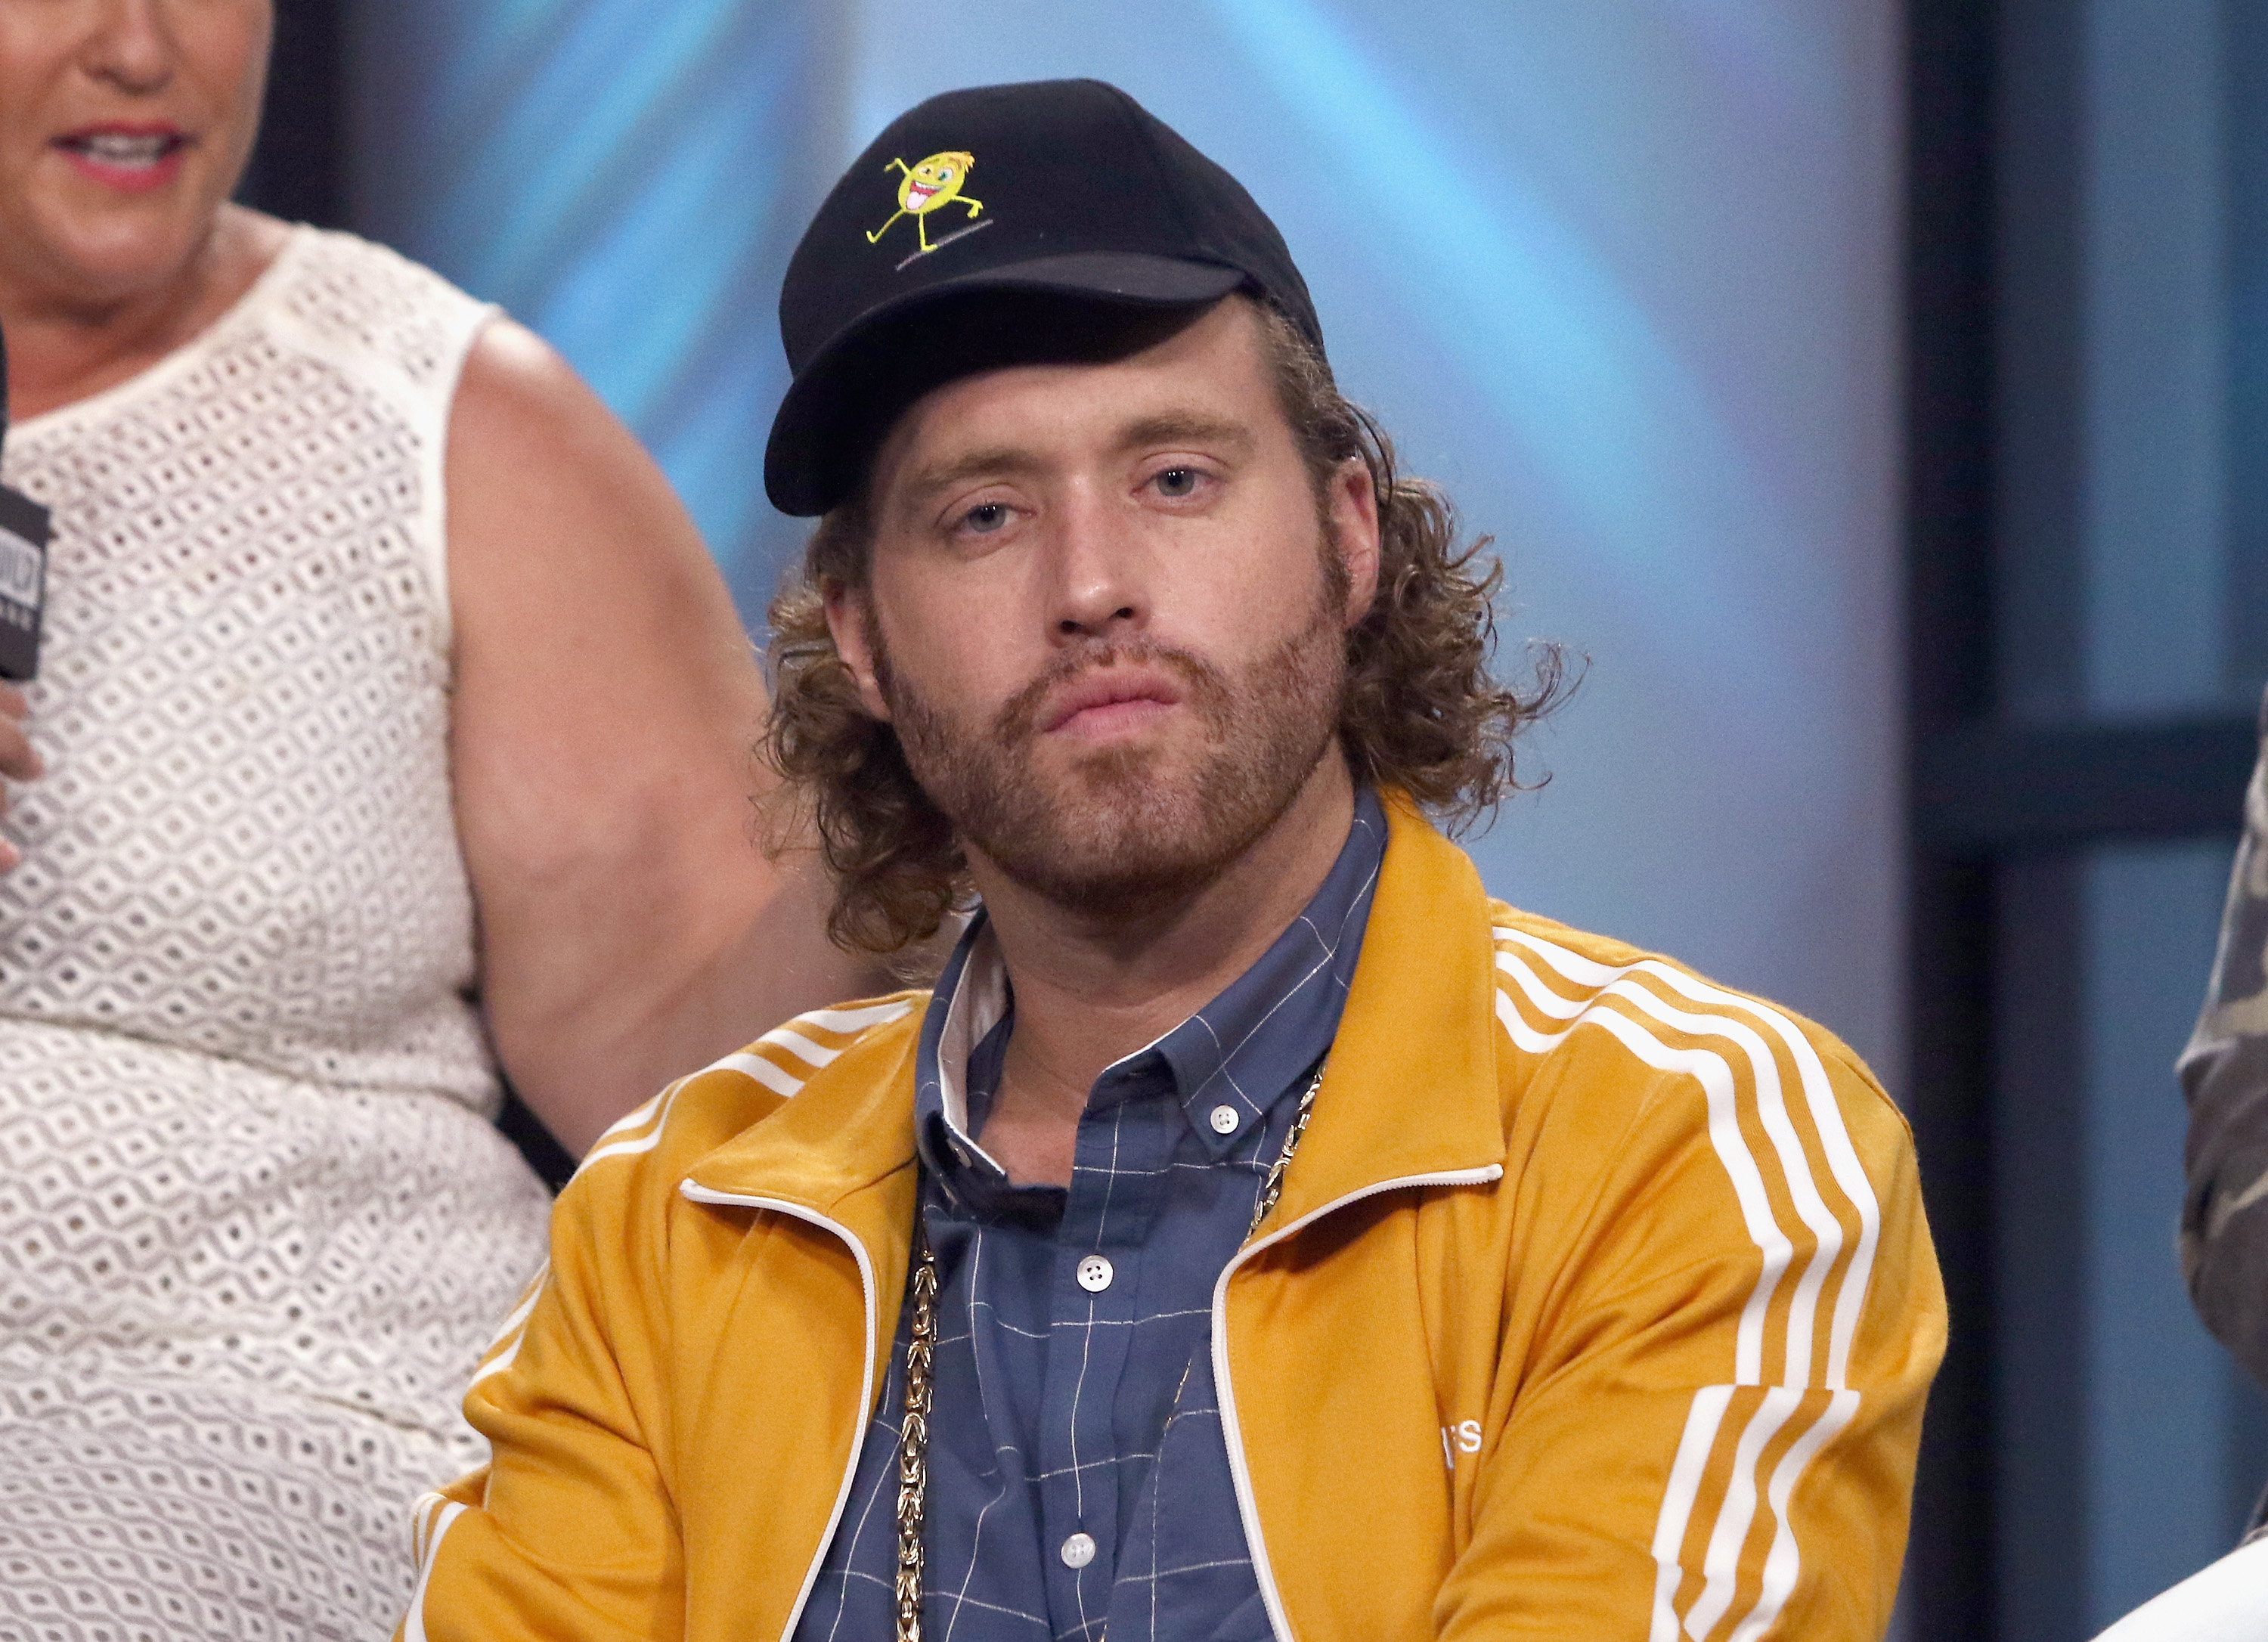 In not surprising news, T.J. Miller's Comedy Central puppet series has been canceled